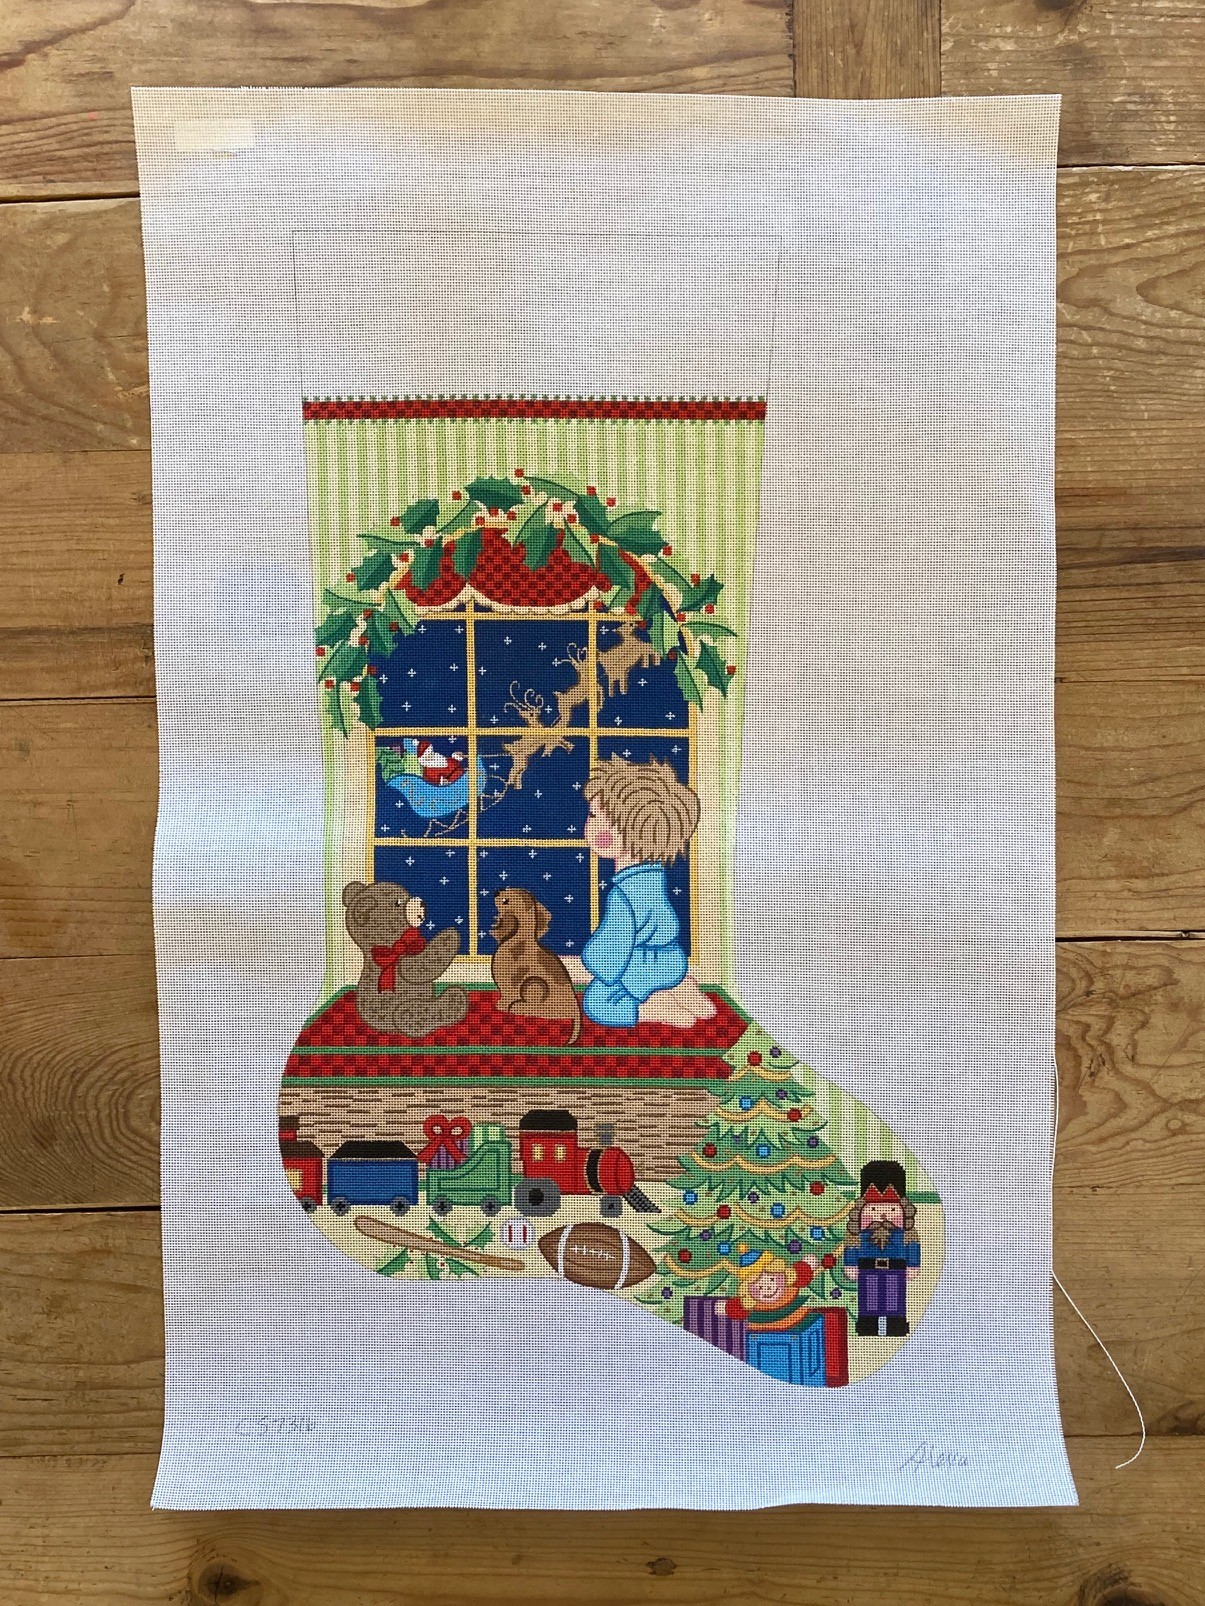 Alexa Needlepoint Designs Trunk Show at The Needle Works